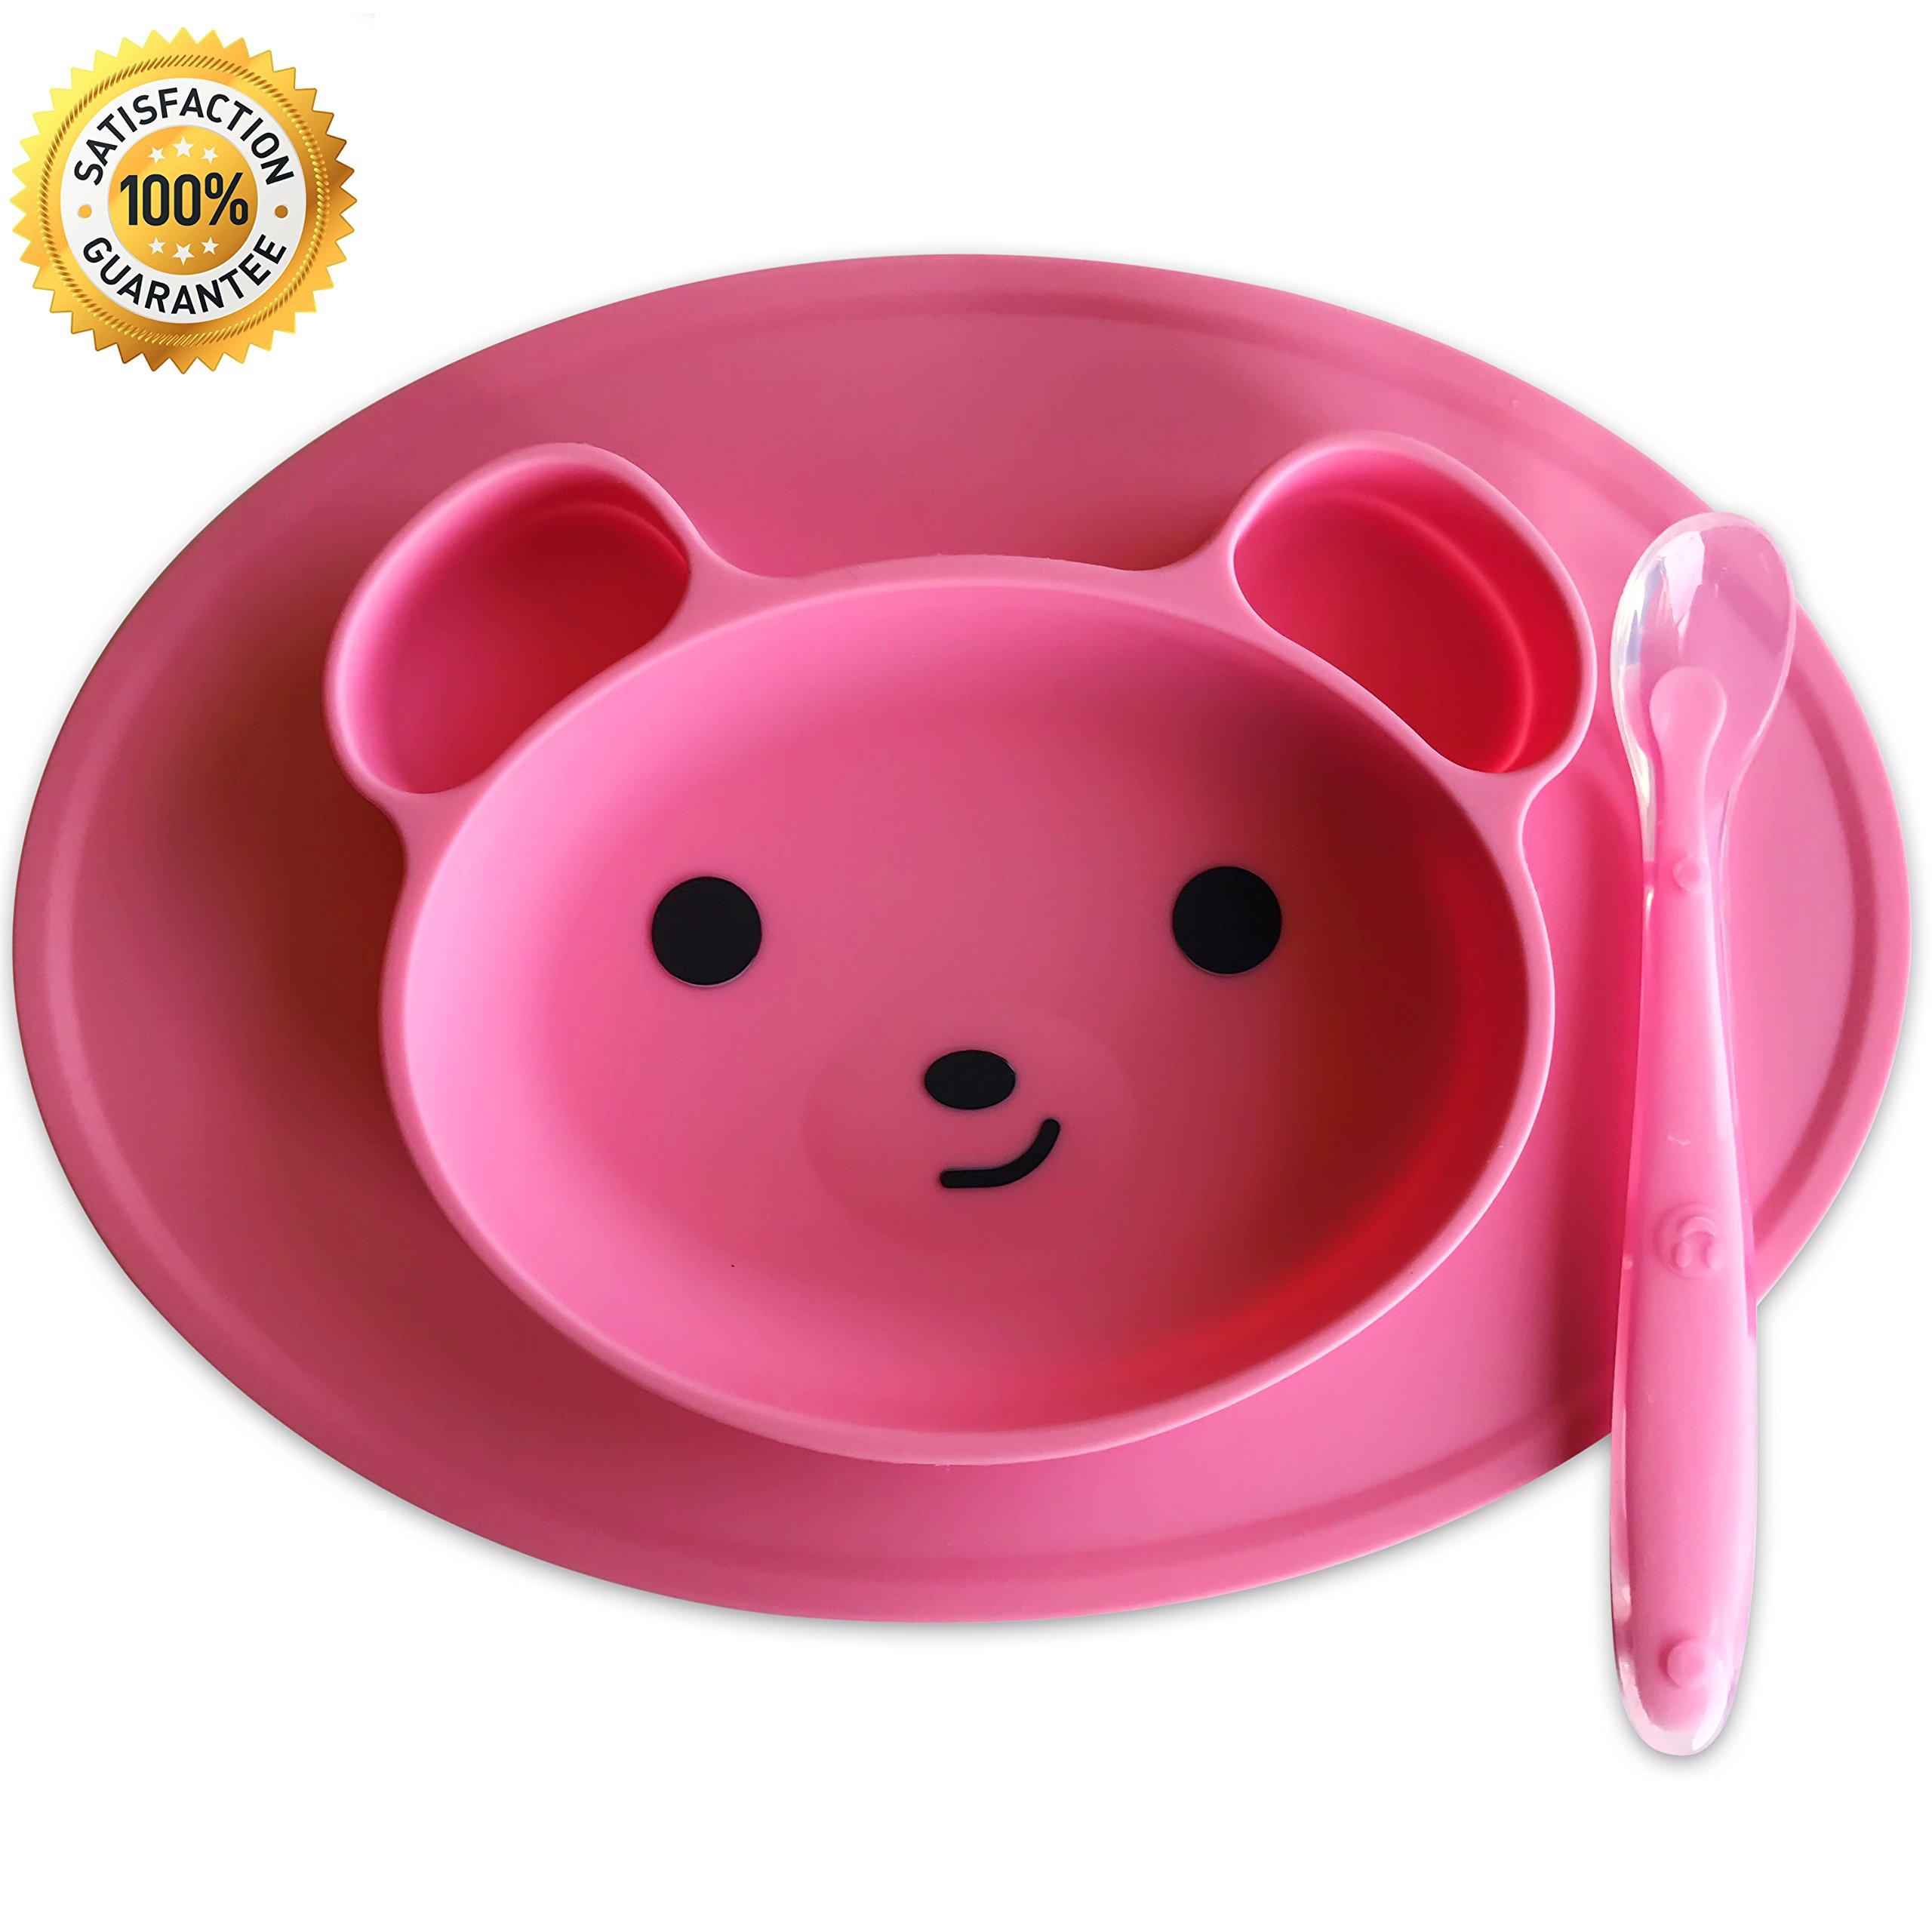 Silicone Baby Placemat [Happy Bear] Silicone Placemat For Toddlers Plus 1 Baby Spoon by Magnetor Plus (Pink)